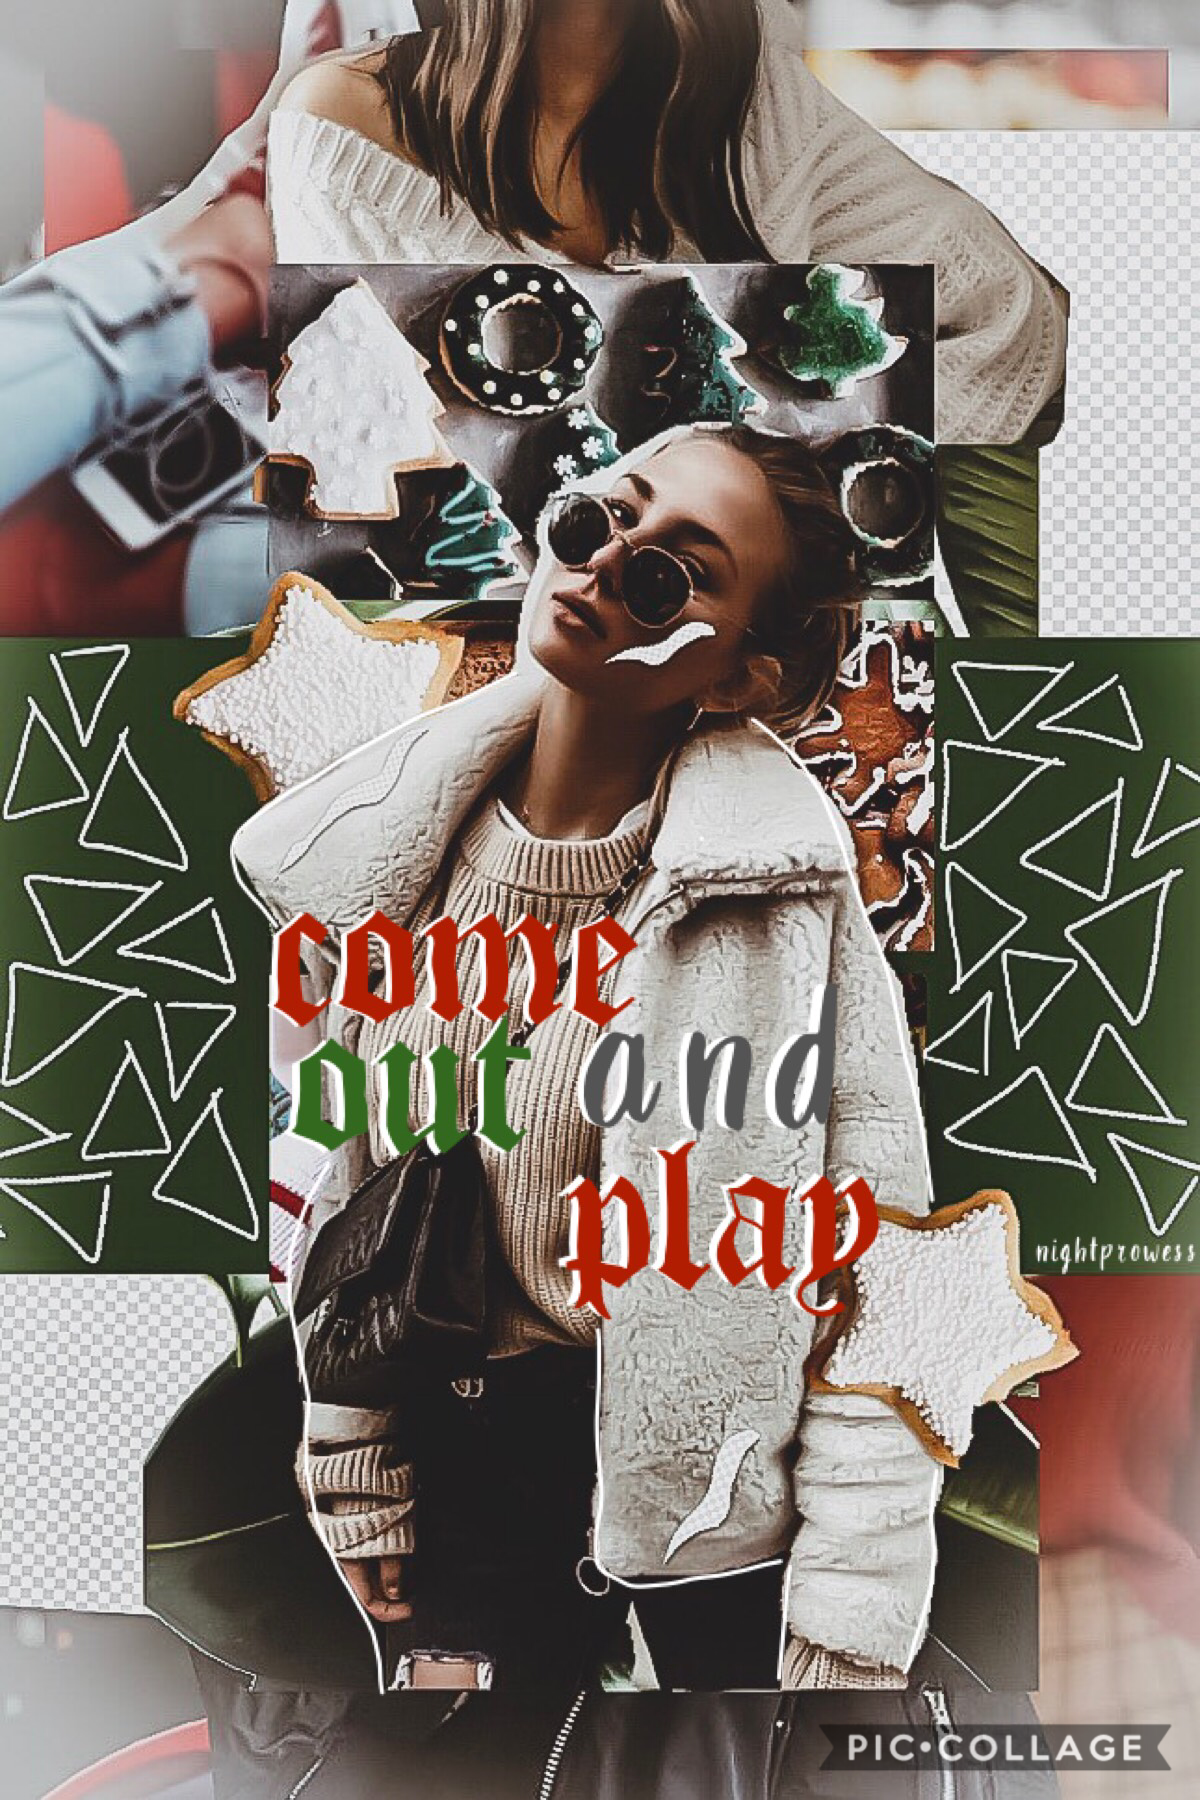 •t•a•p• I don't even know what's defined as good or bad anymore collage wise, so I might take this down. Check remixes.